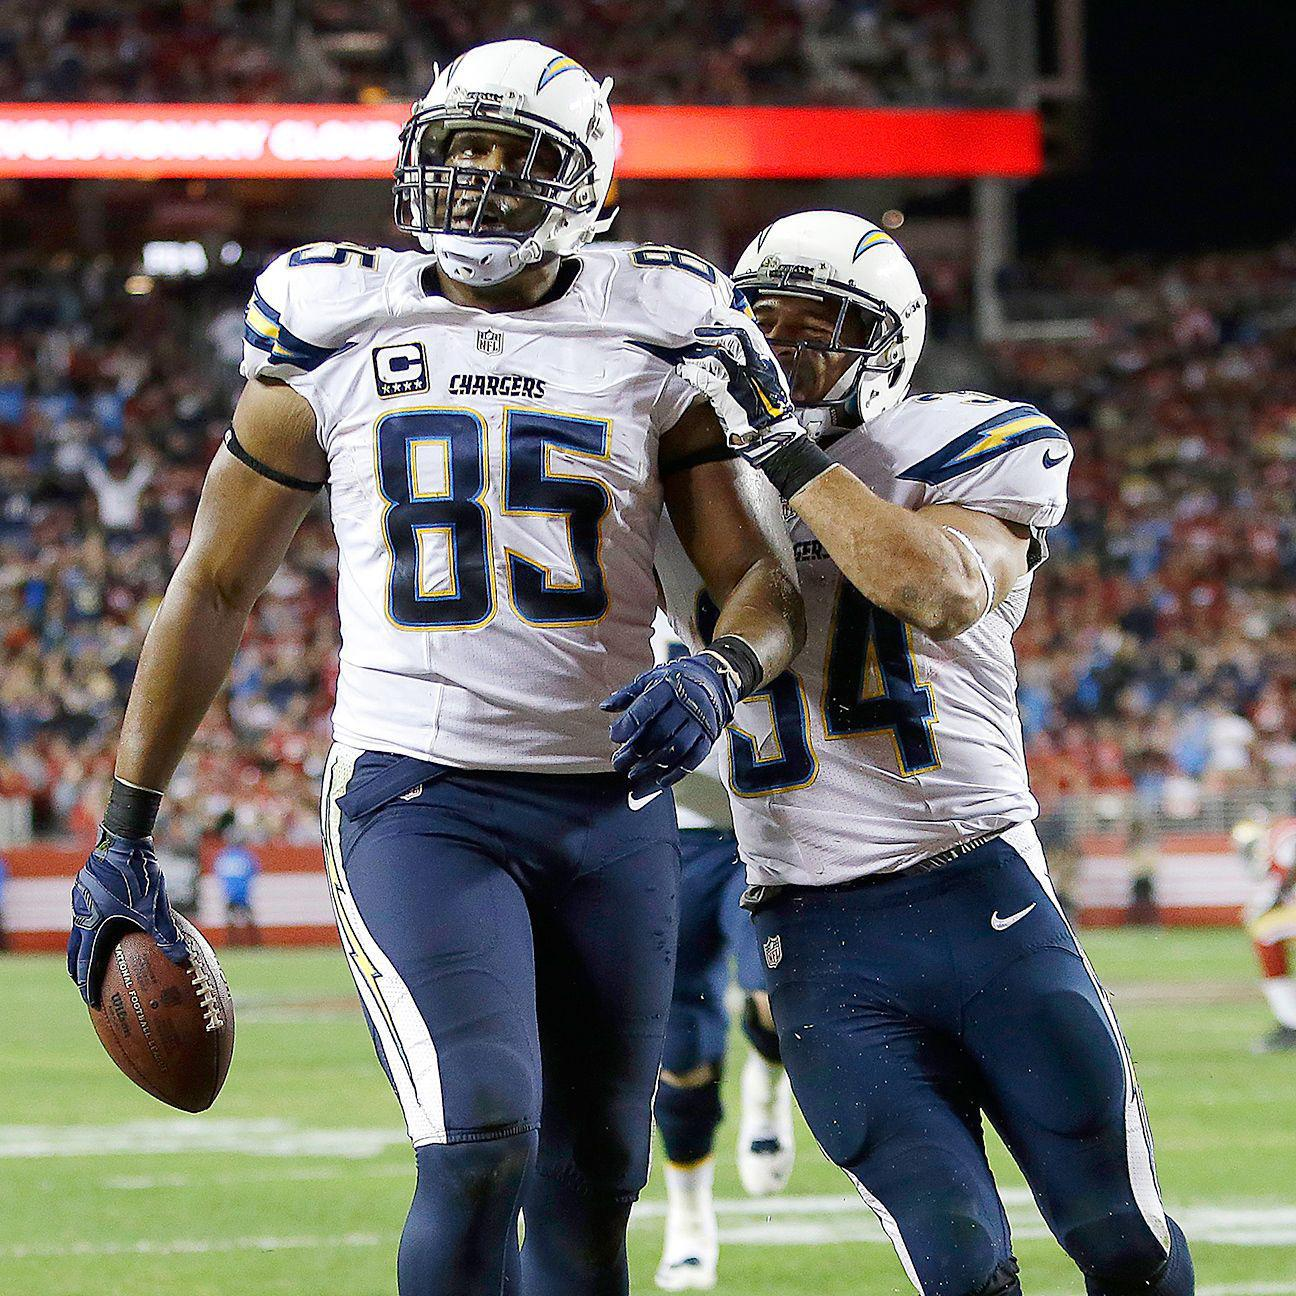 San Diego Chargers Careers: Nearing The End Of His Career, Antonio Gates Focused On